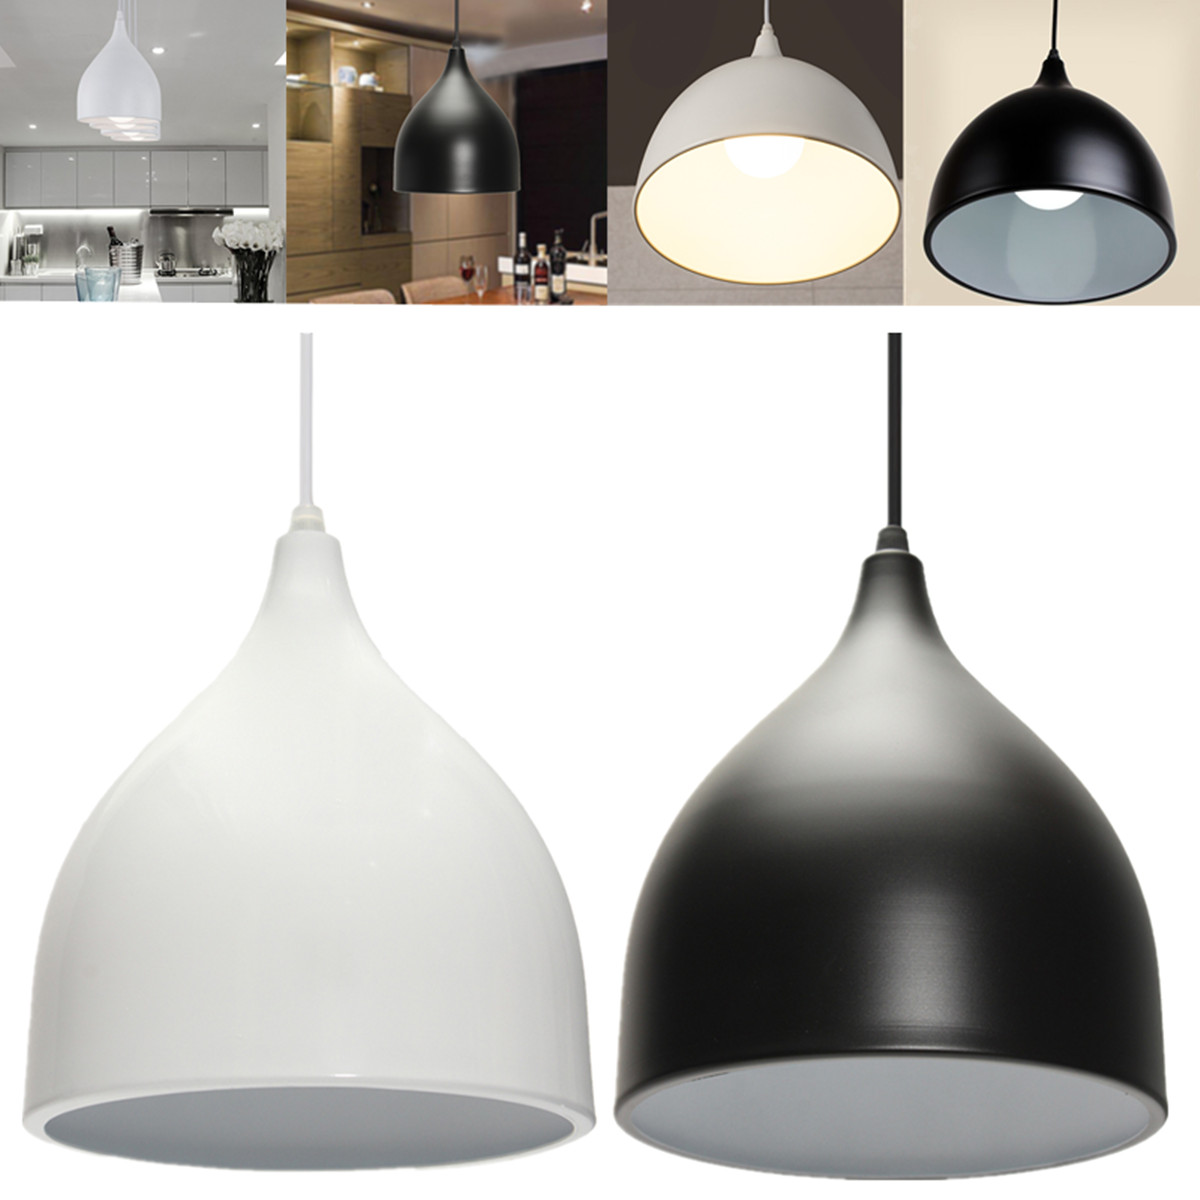 Modern Metal Dome Retro Style Ceiling Chandeliers Light Shade Lampshades Shades Restaurant Lamps Dining Room Home Decor